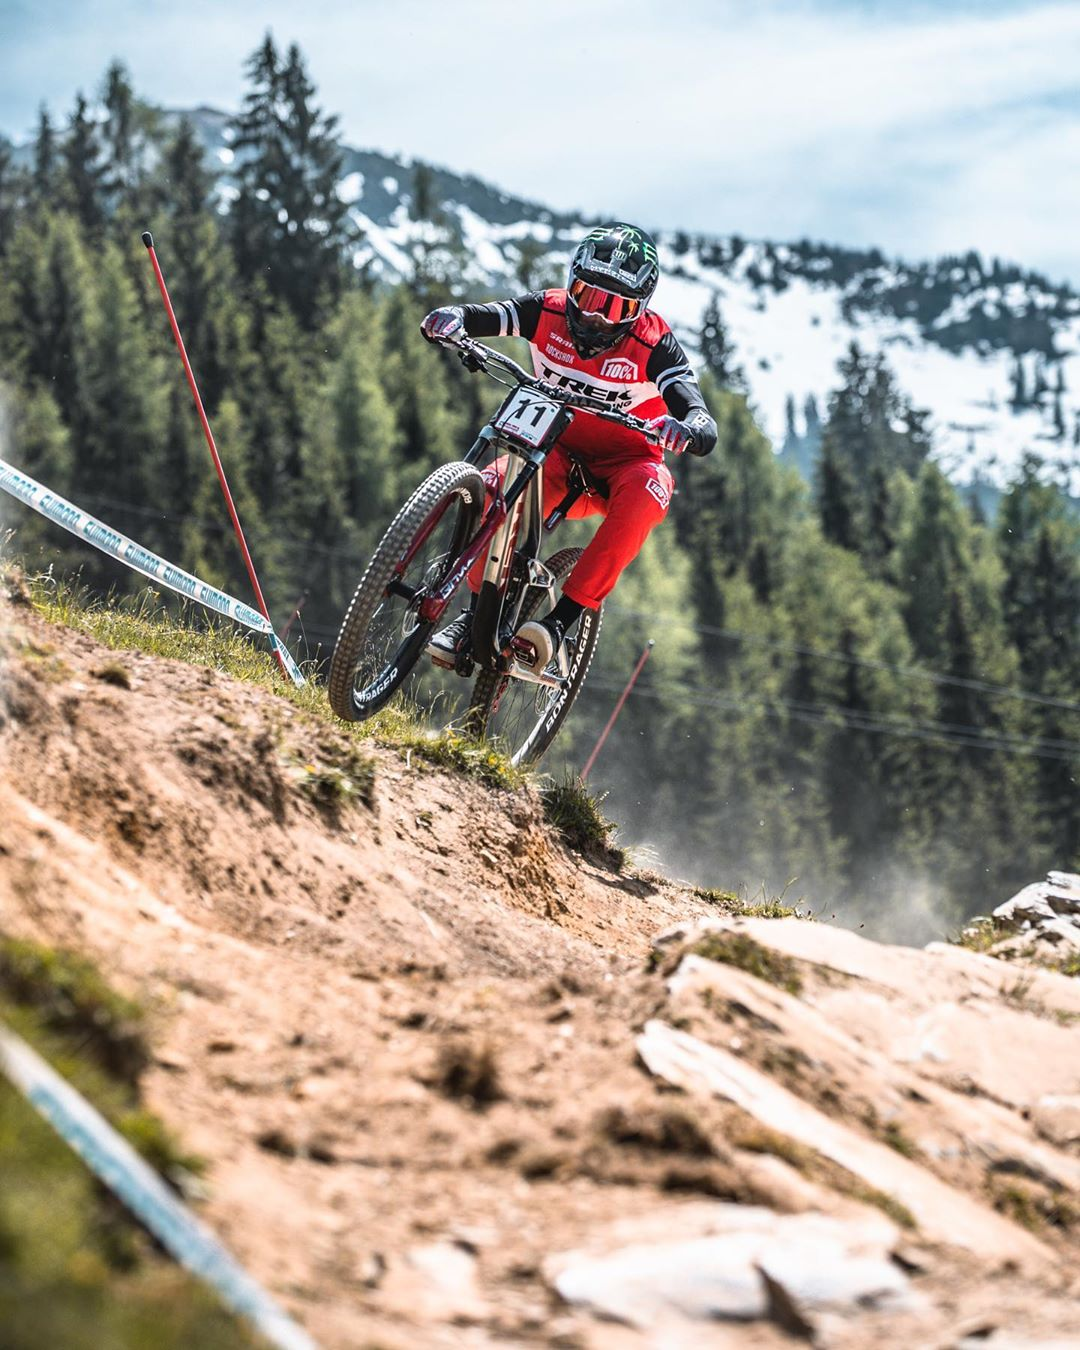 Little sequence I took of @charlie_harrison_ absolutely flying through this section at Leogang last weekend. #ride100percent #downhillmtb #mtb #downhill